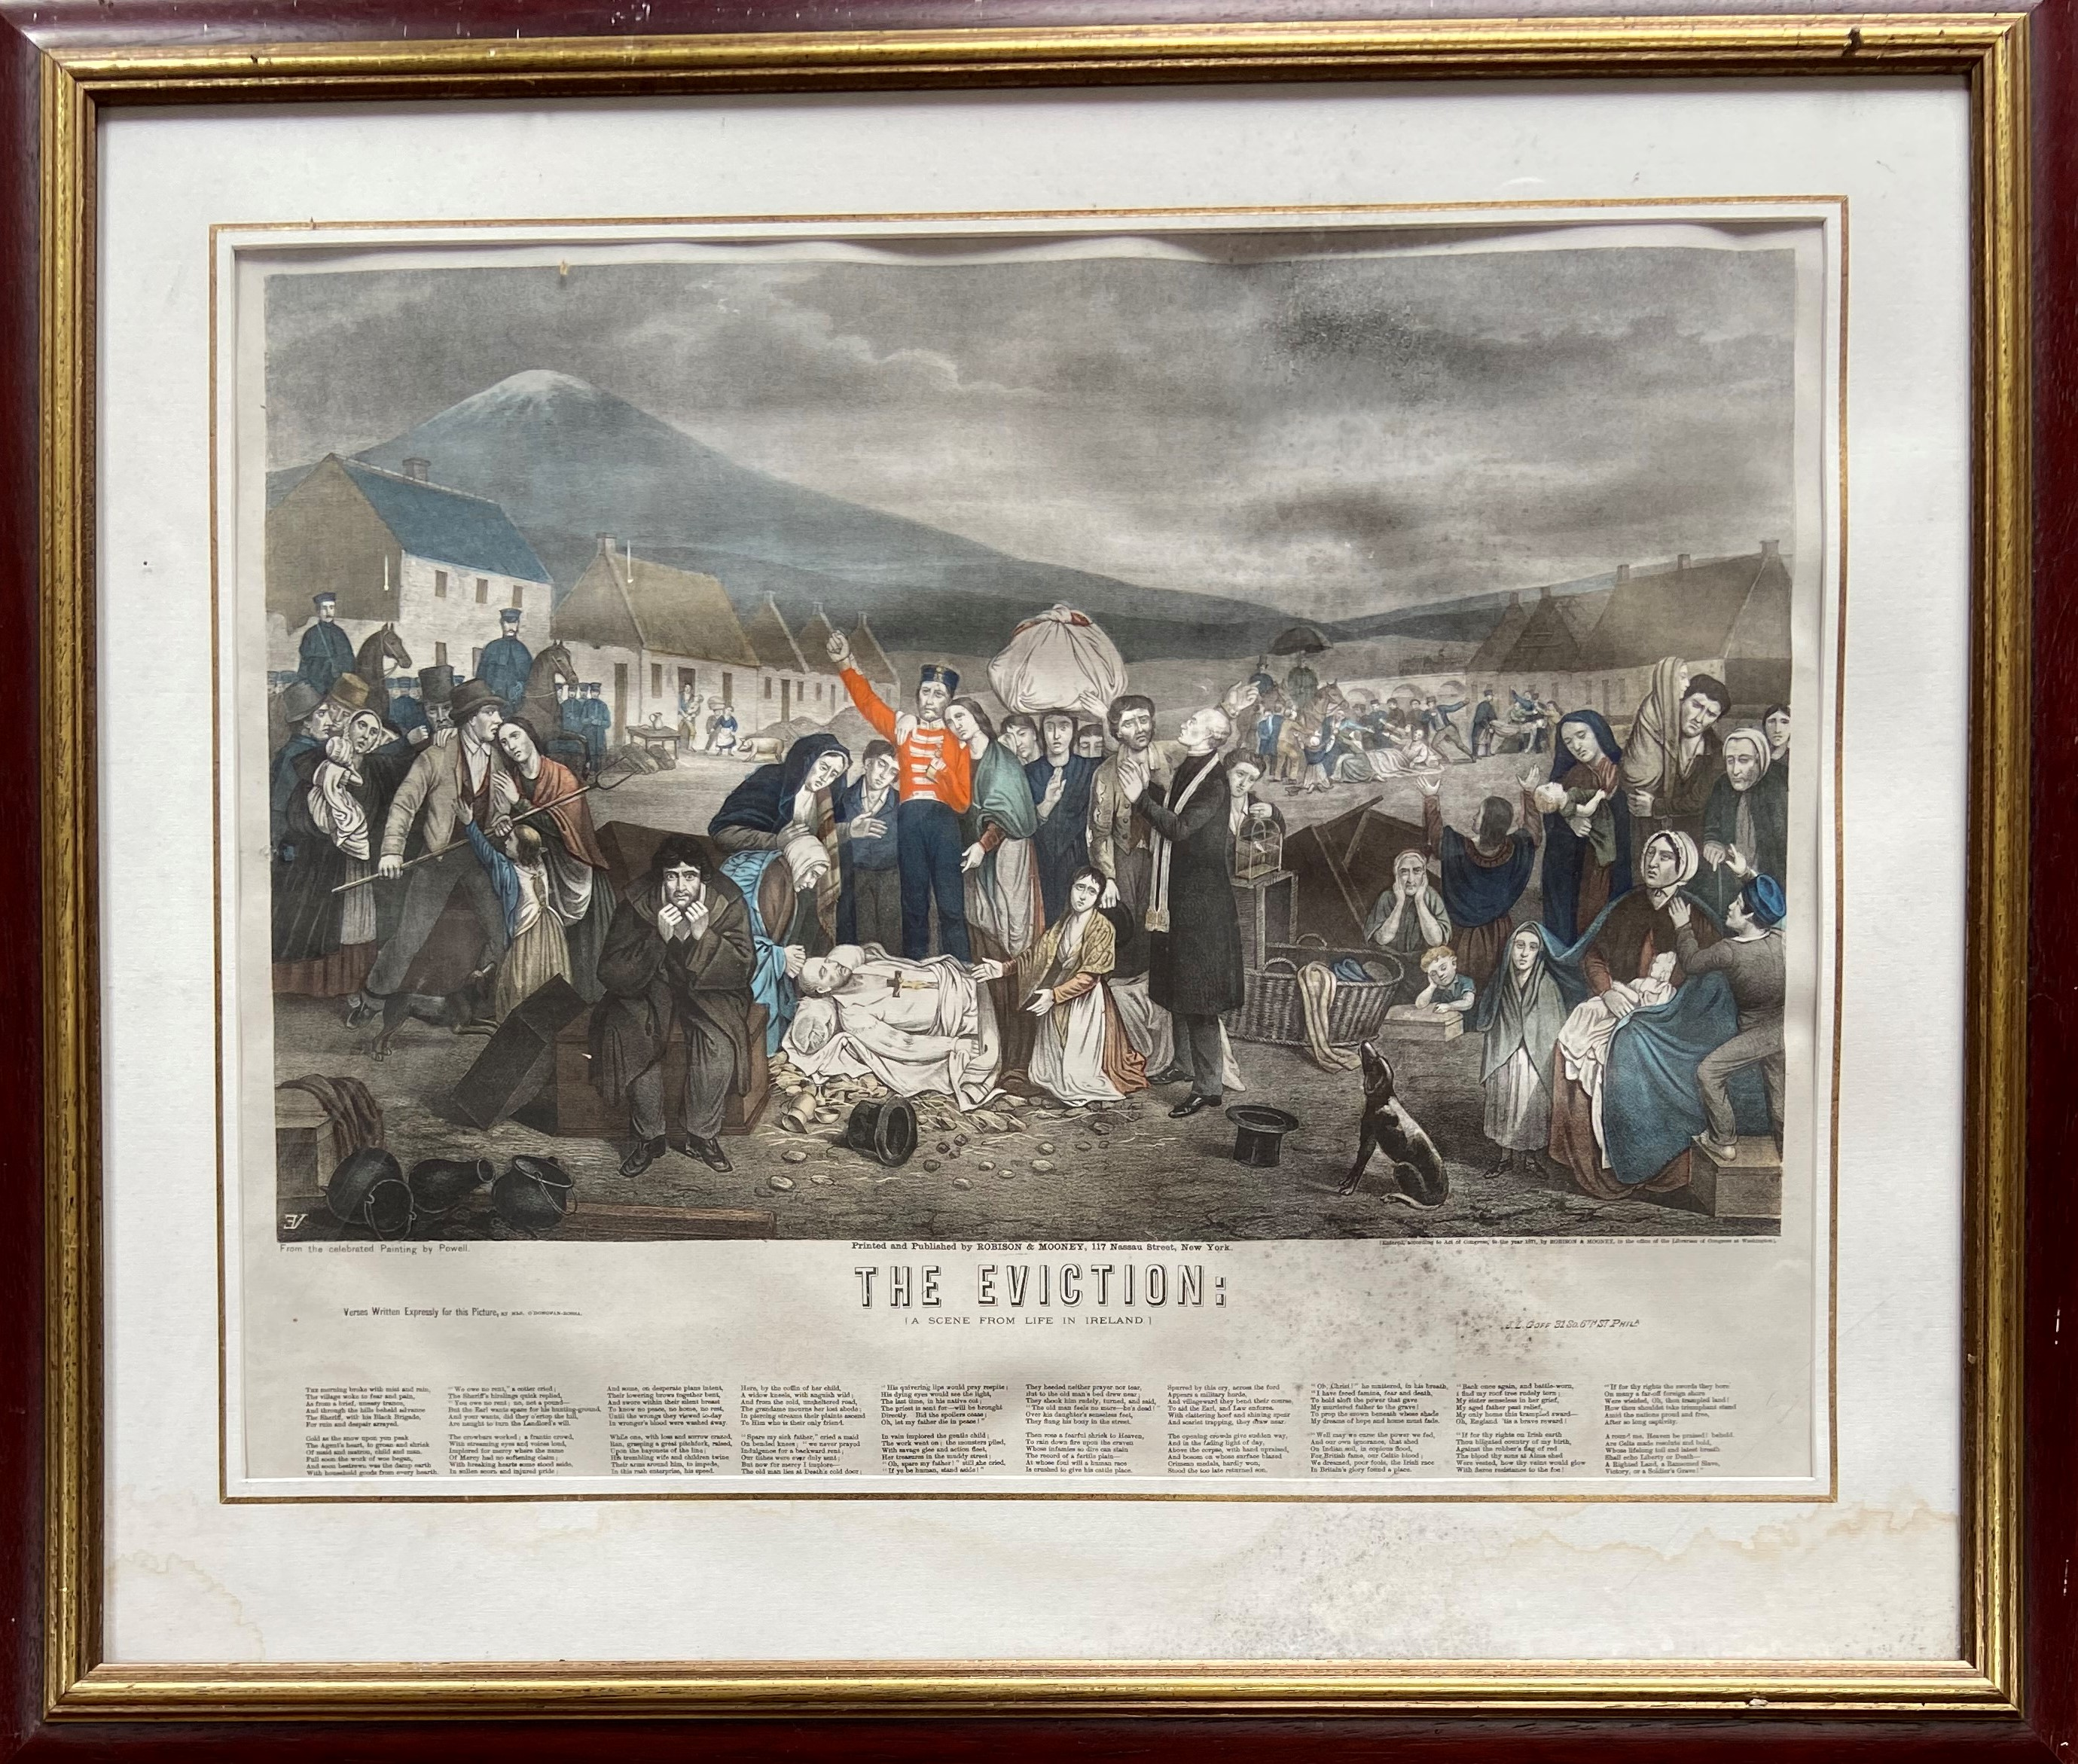 After Powell ''The Eviction'' (A Scene from Life in Ireland) a large coloured Engraving, 19'' x 24''